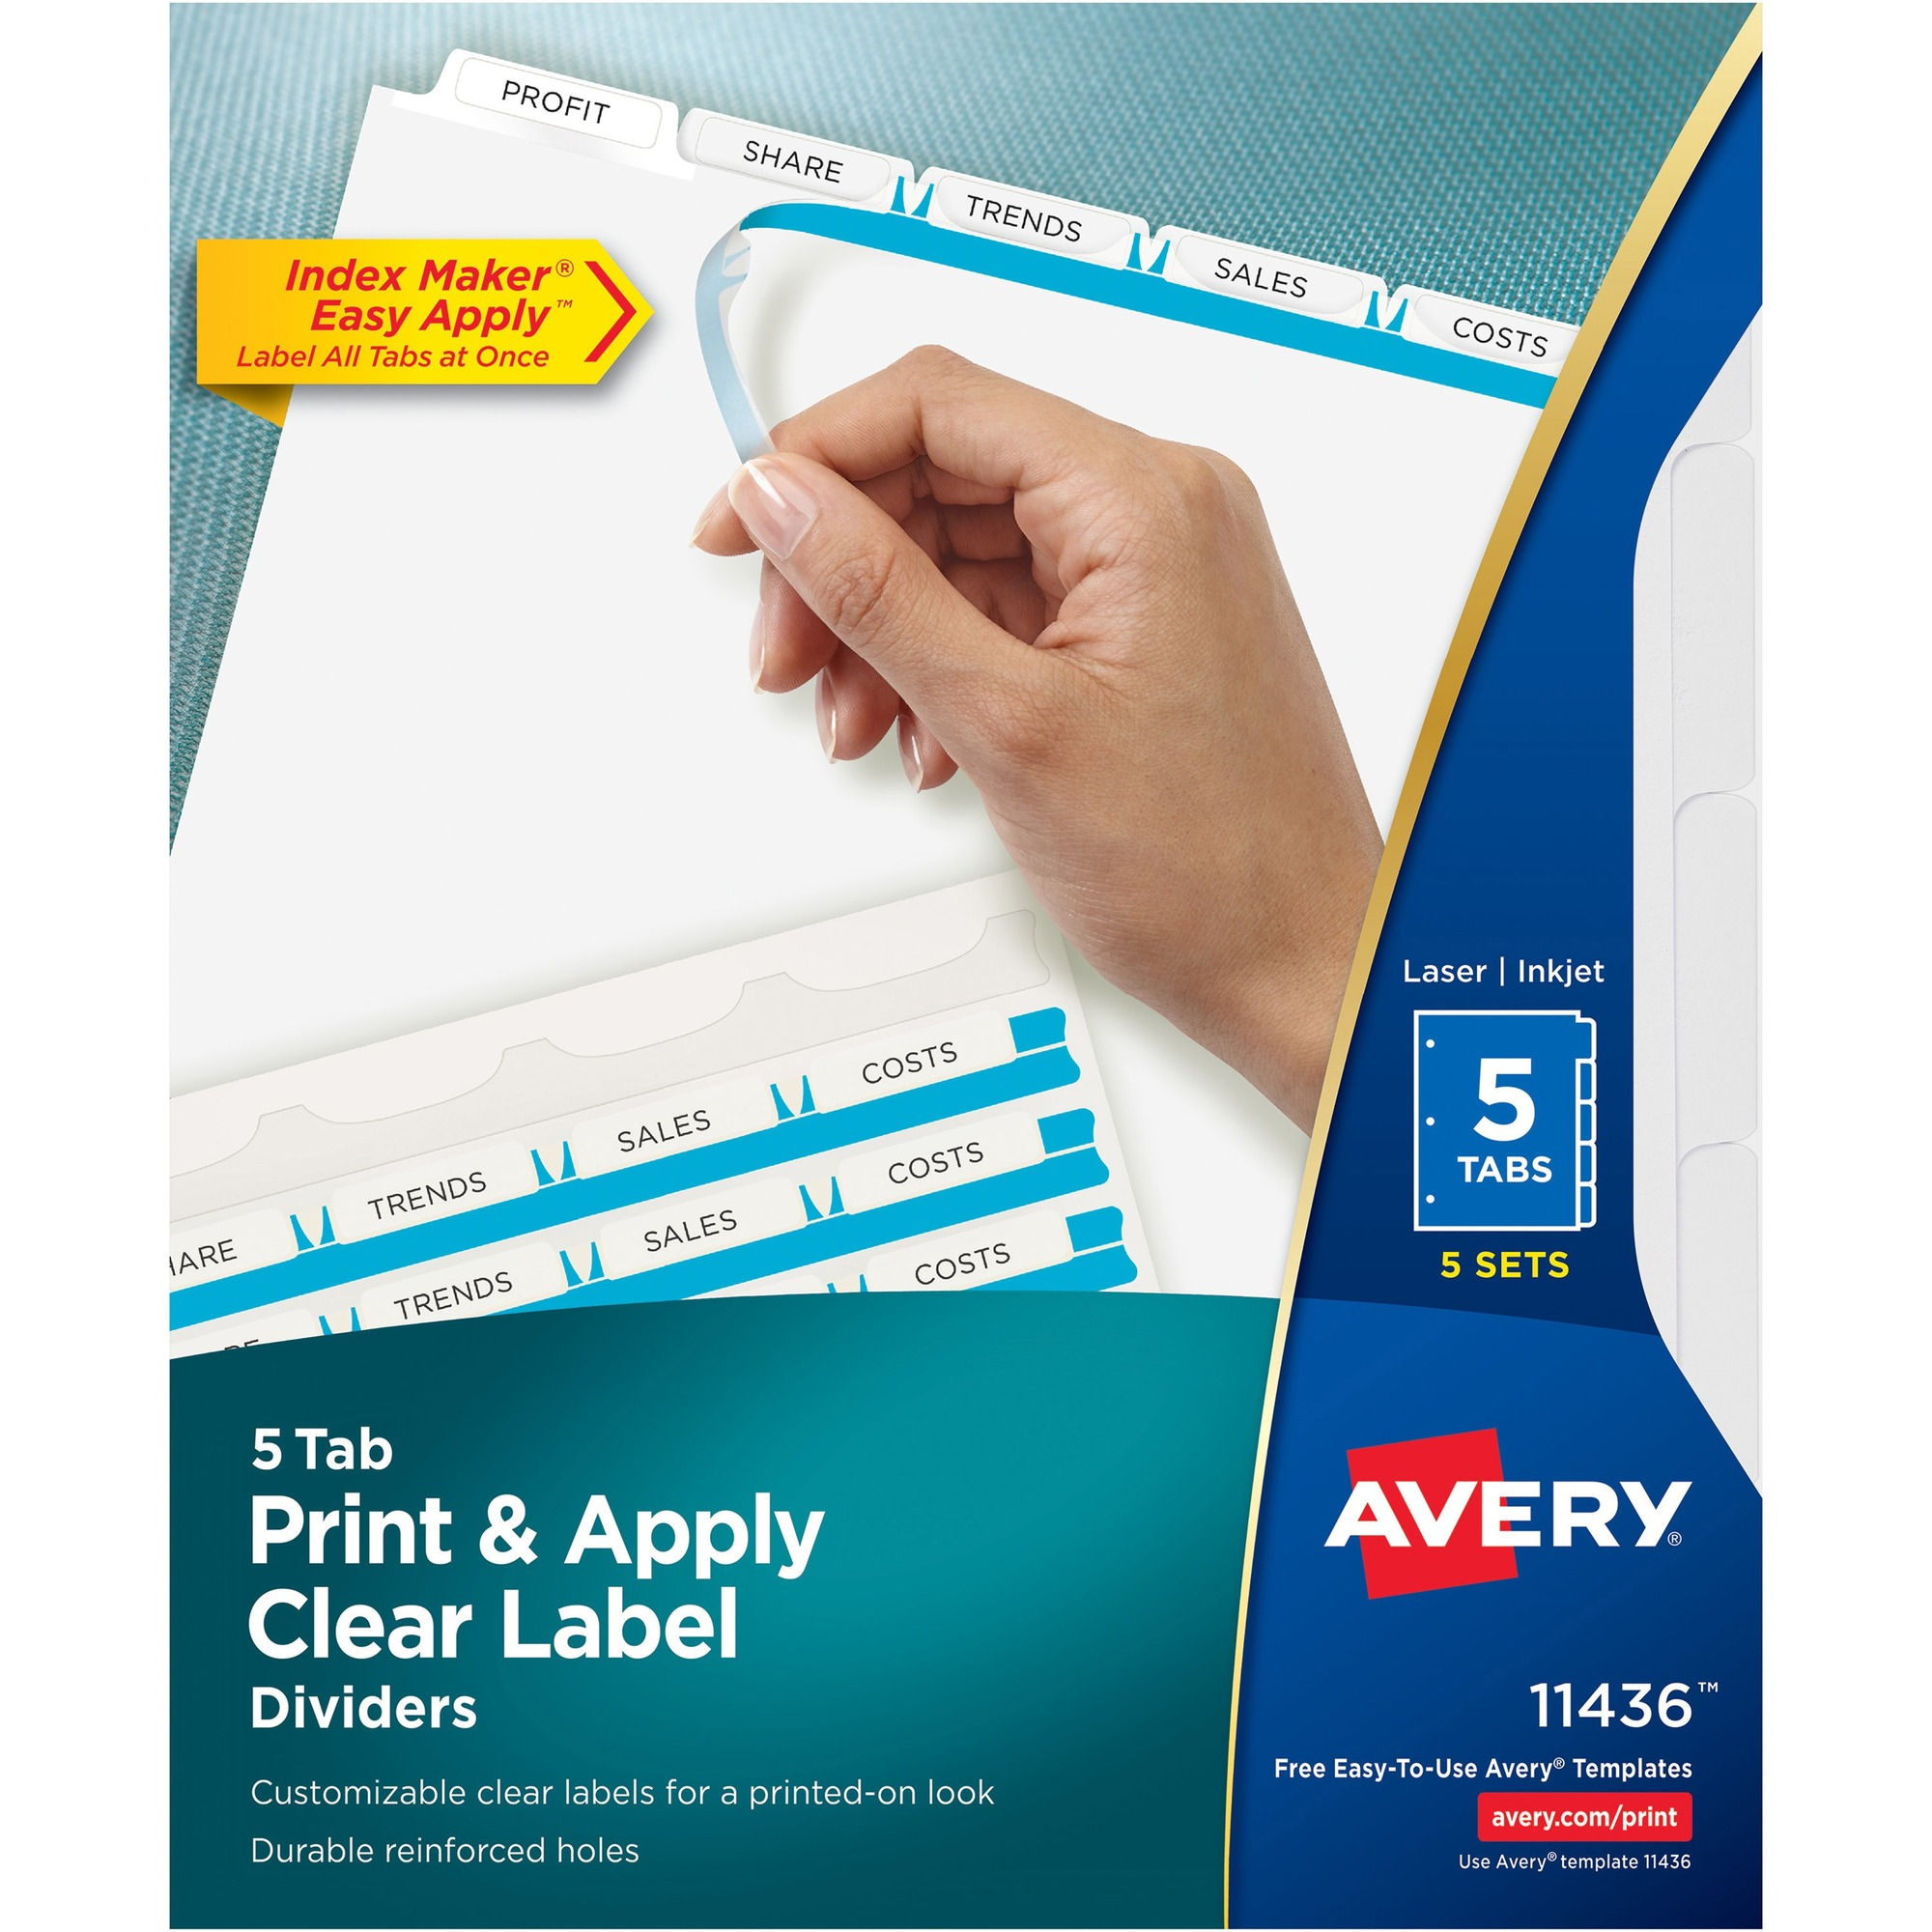 West coast office supplies office supplies binders for Avery easy apply 5 tab template